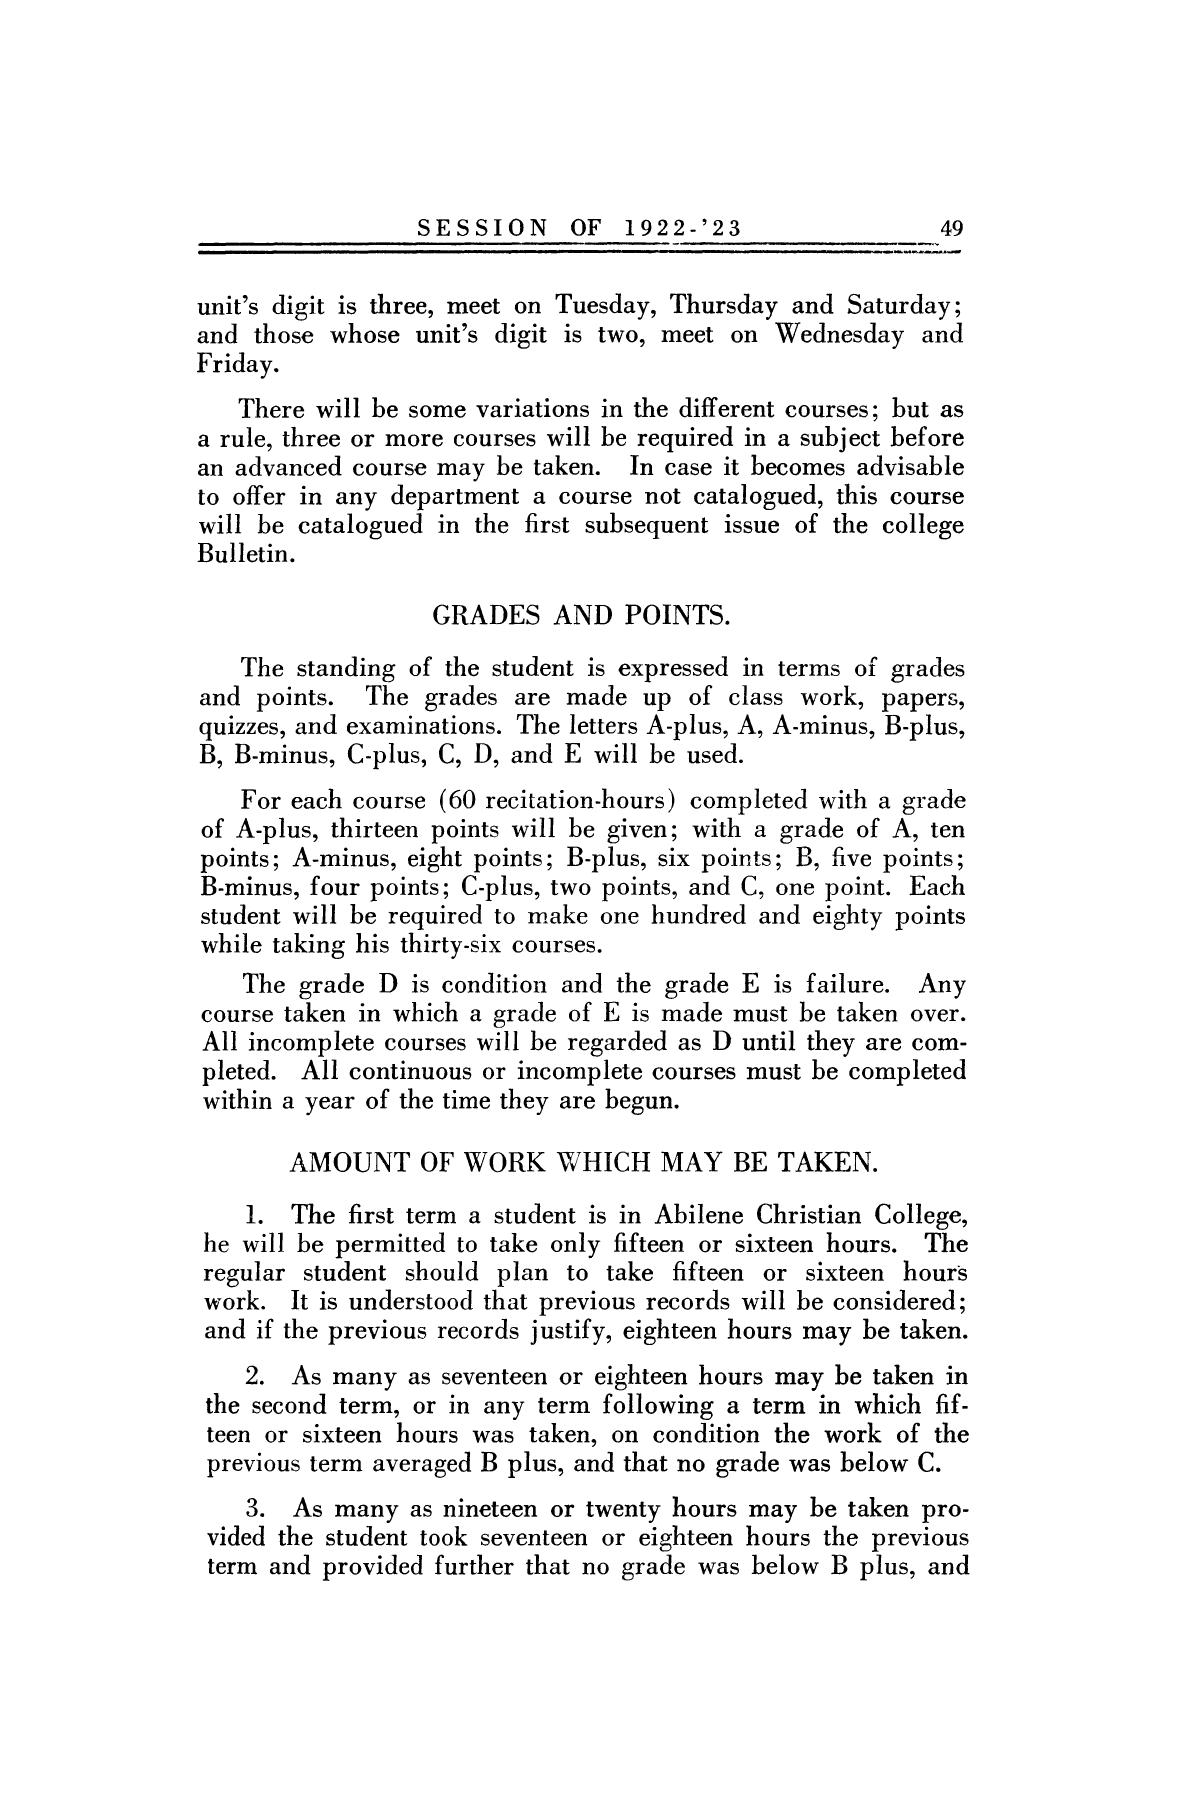 Catalog of Abilene Christian College, 1922-1923                                                                                                      49